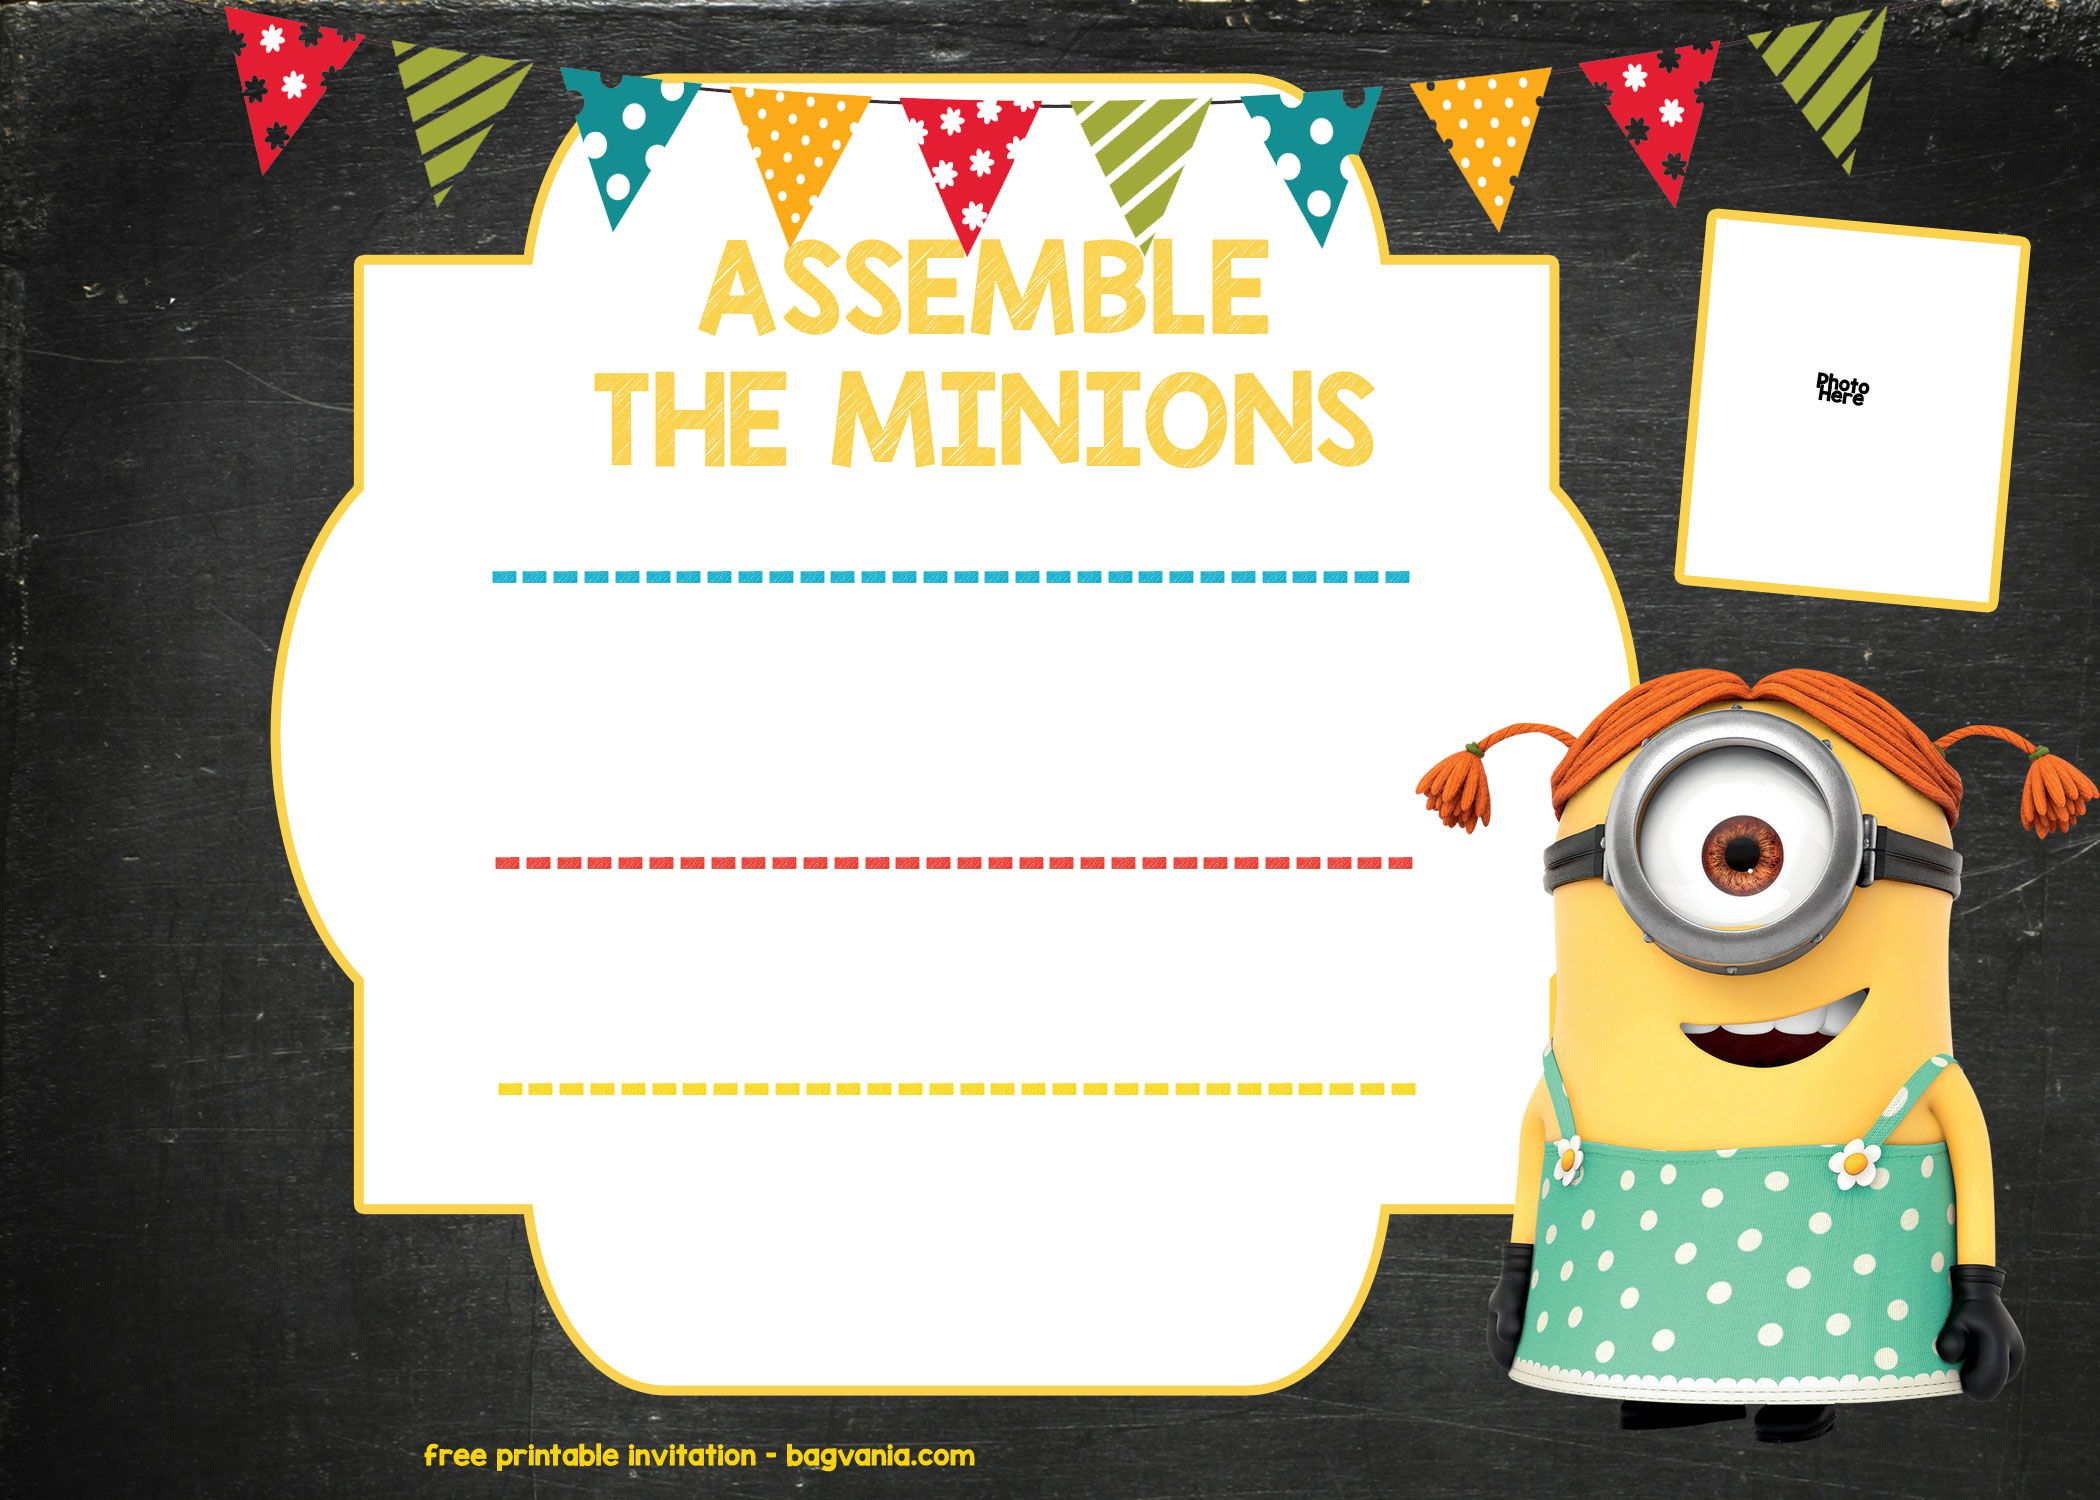 Updated Bunch Of Minion Birthday Party Invitations Ideas Free Downloadable Minion Birthday Invitations Free Printable Birthday Invitations Party Invite Template